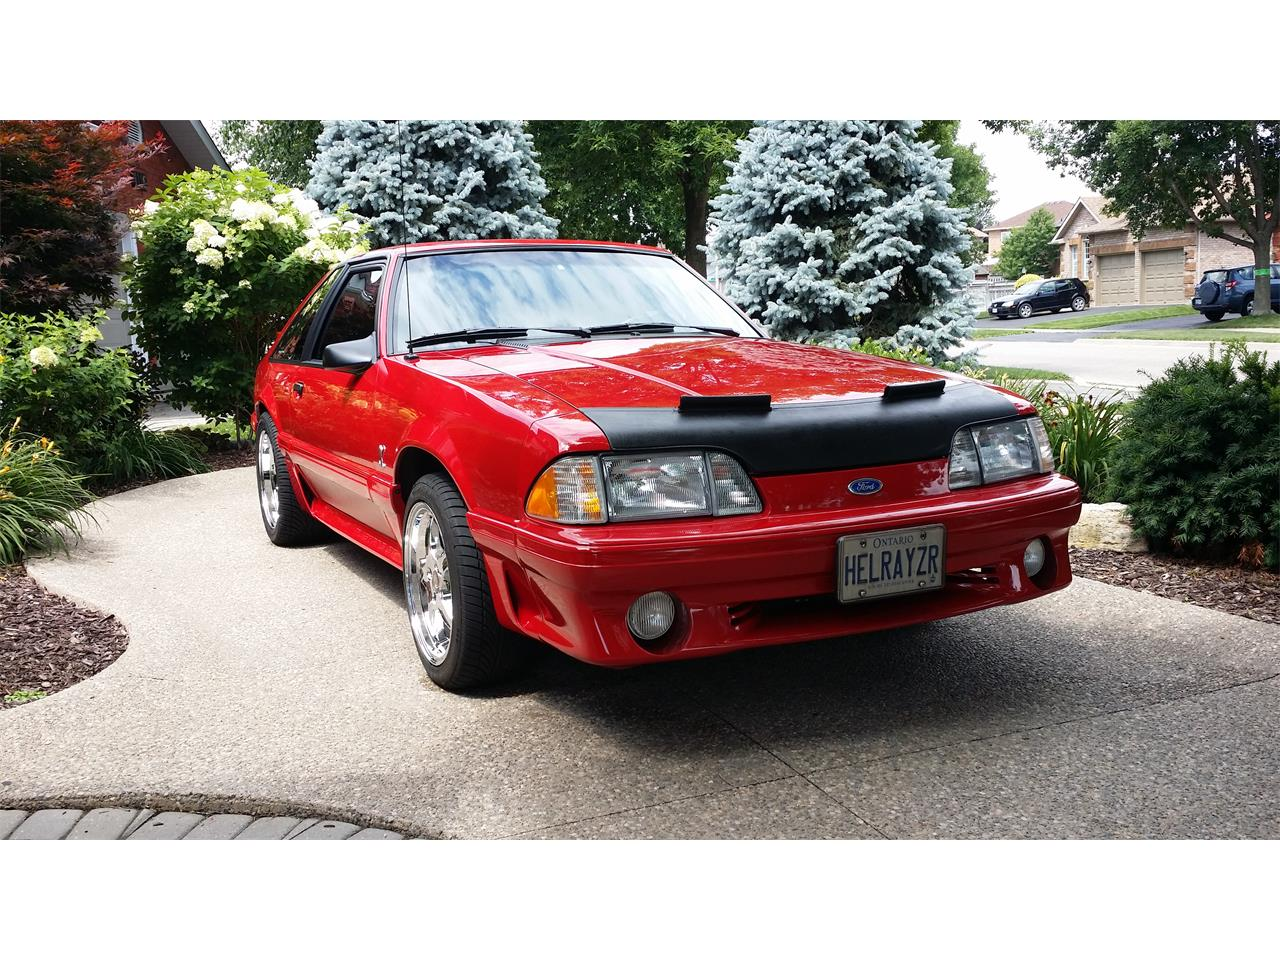 Large Picture of '87 Ford Mustang Cobra located in Ontario Offered by a Private Seller - PSFC